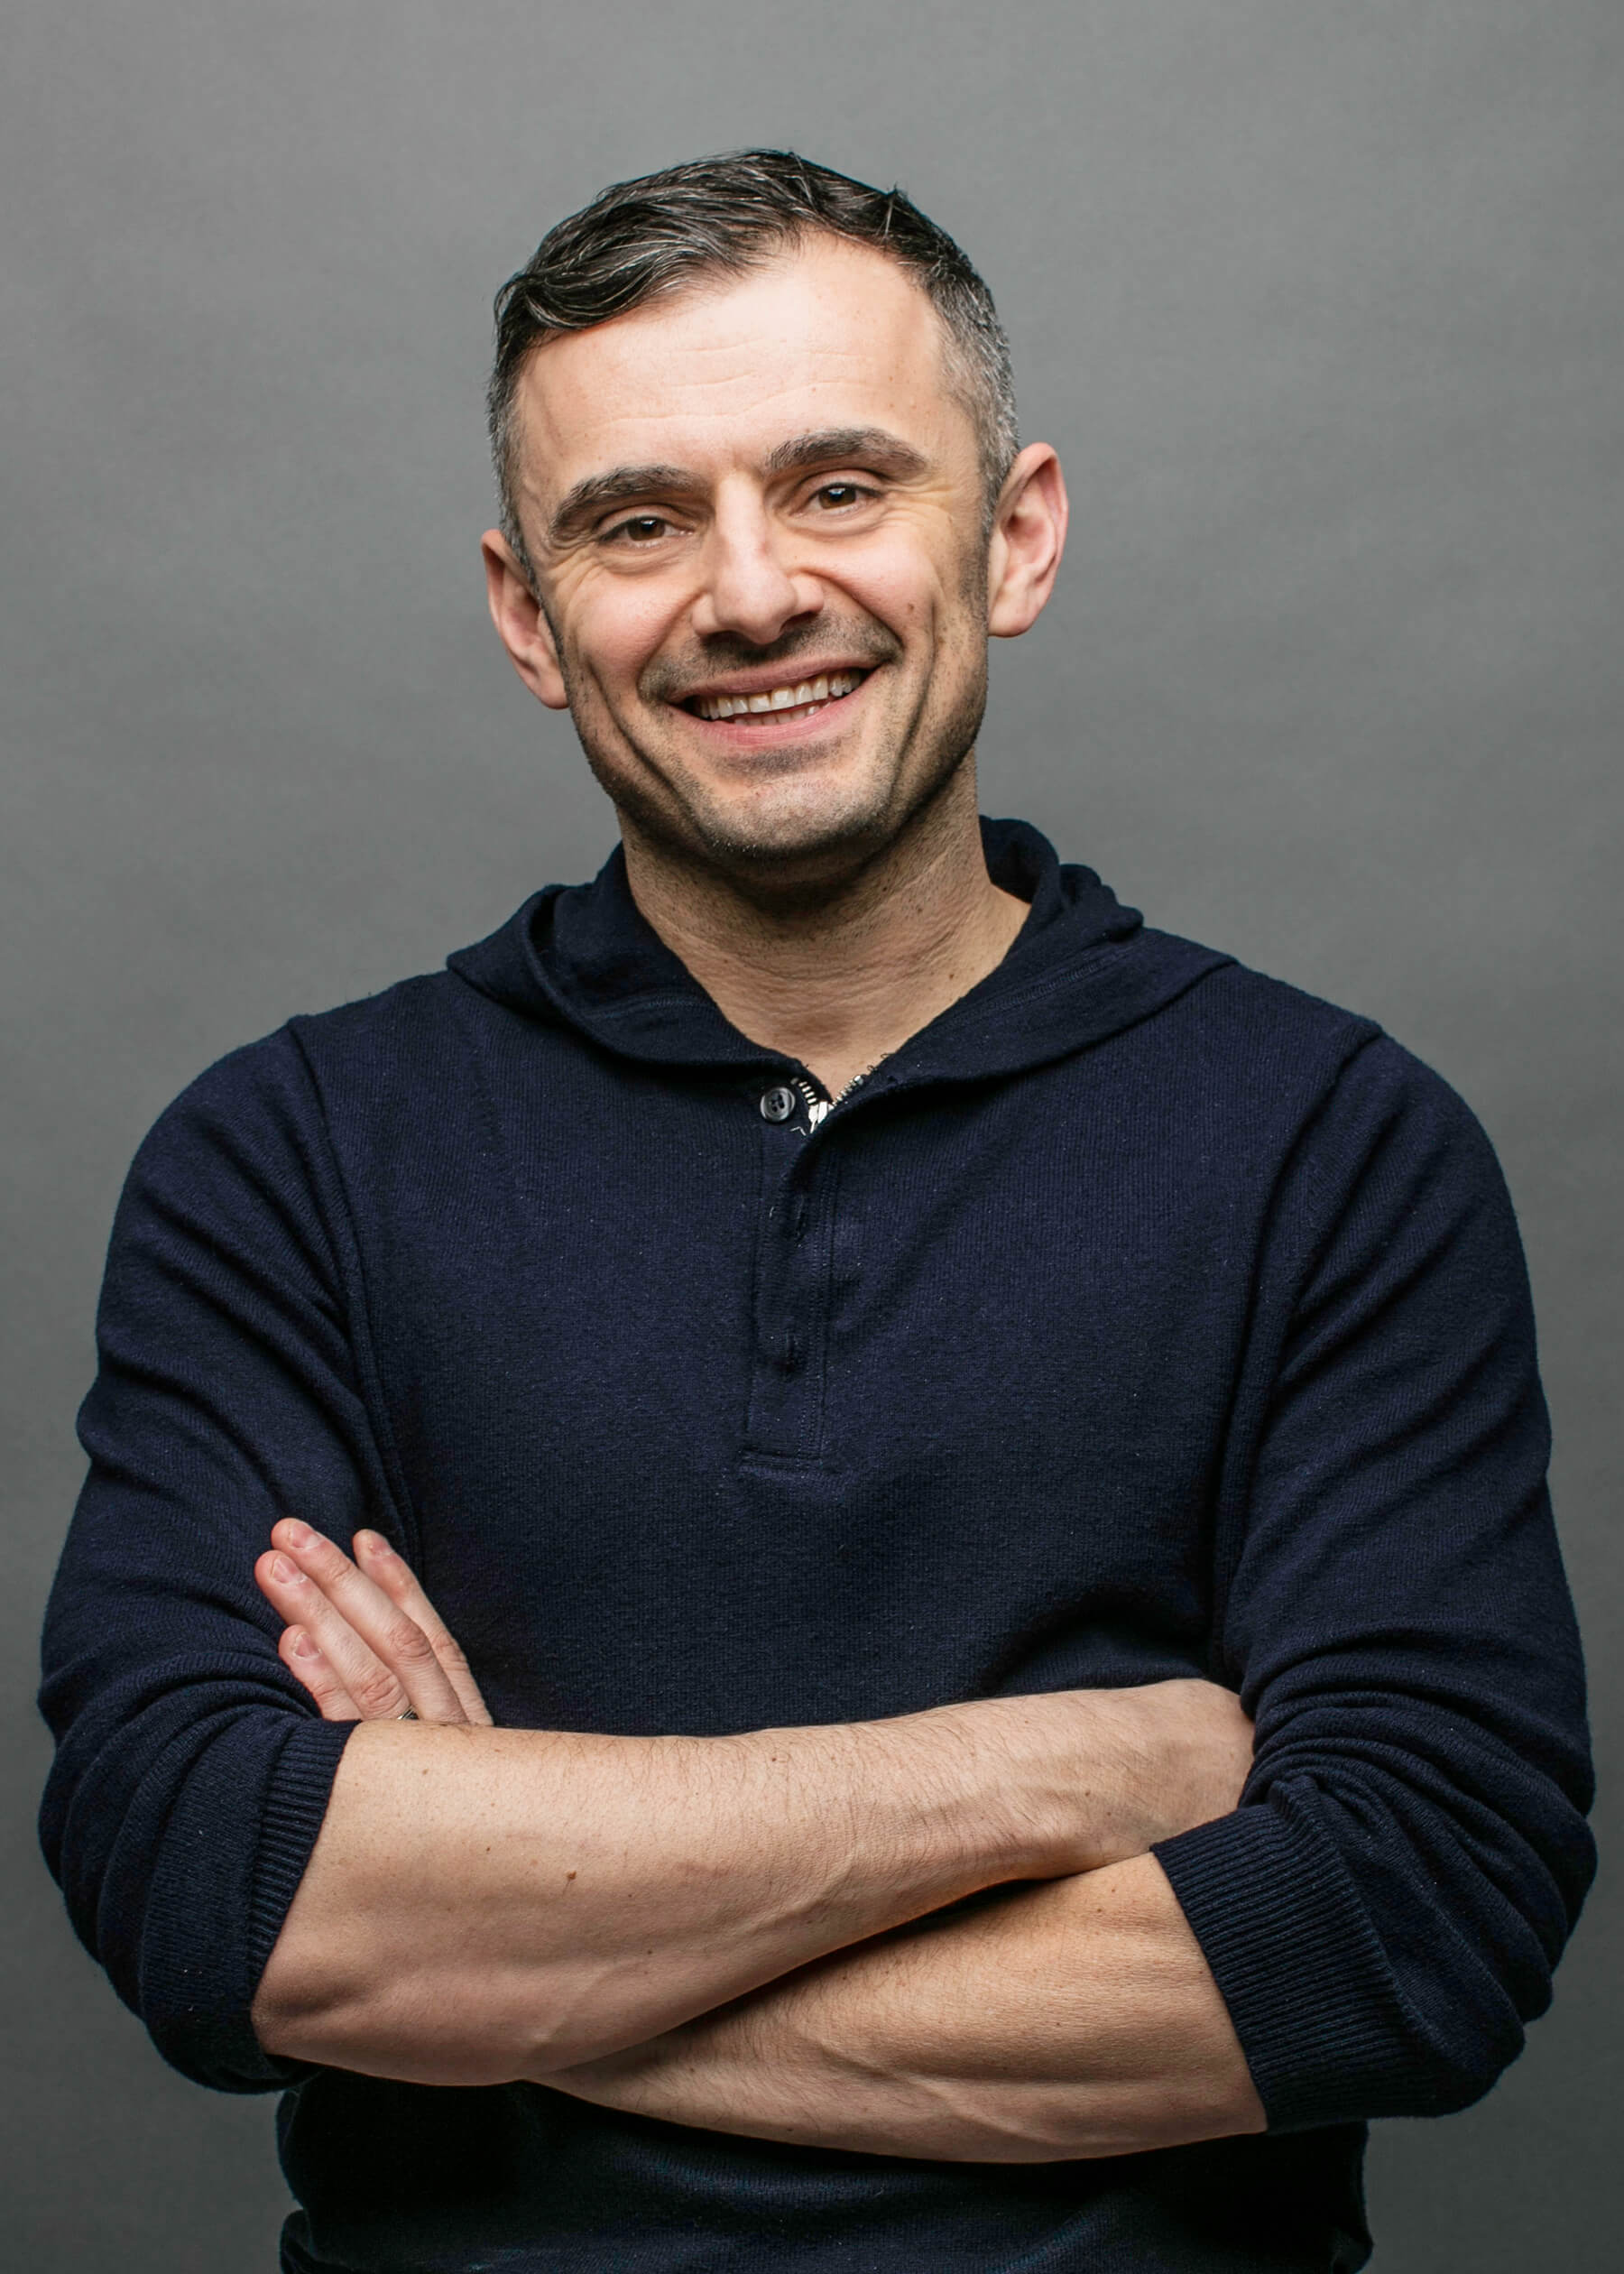 VaynerX Chairman Gary Vaynerchuk, along with his digital agency VaynerMedia, have announced additional speakers and programming to their lineup for the second annual Agent2021